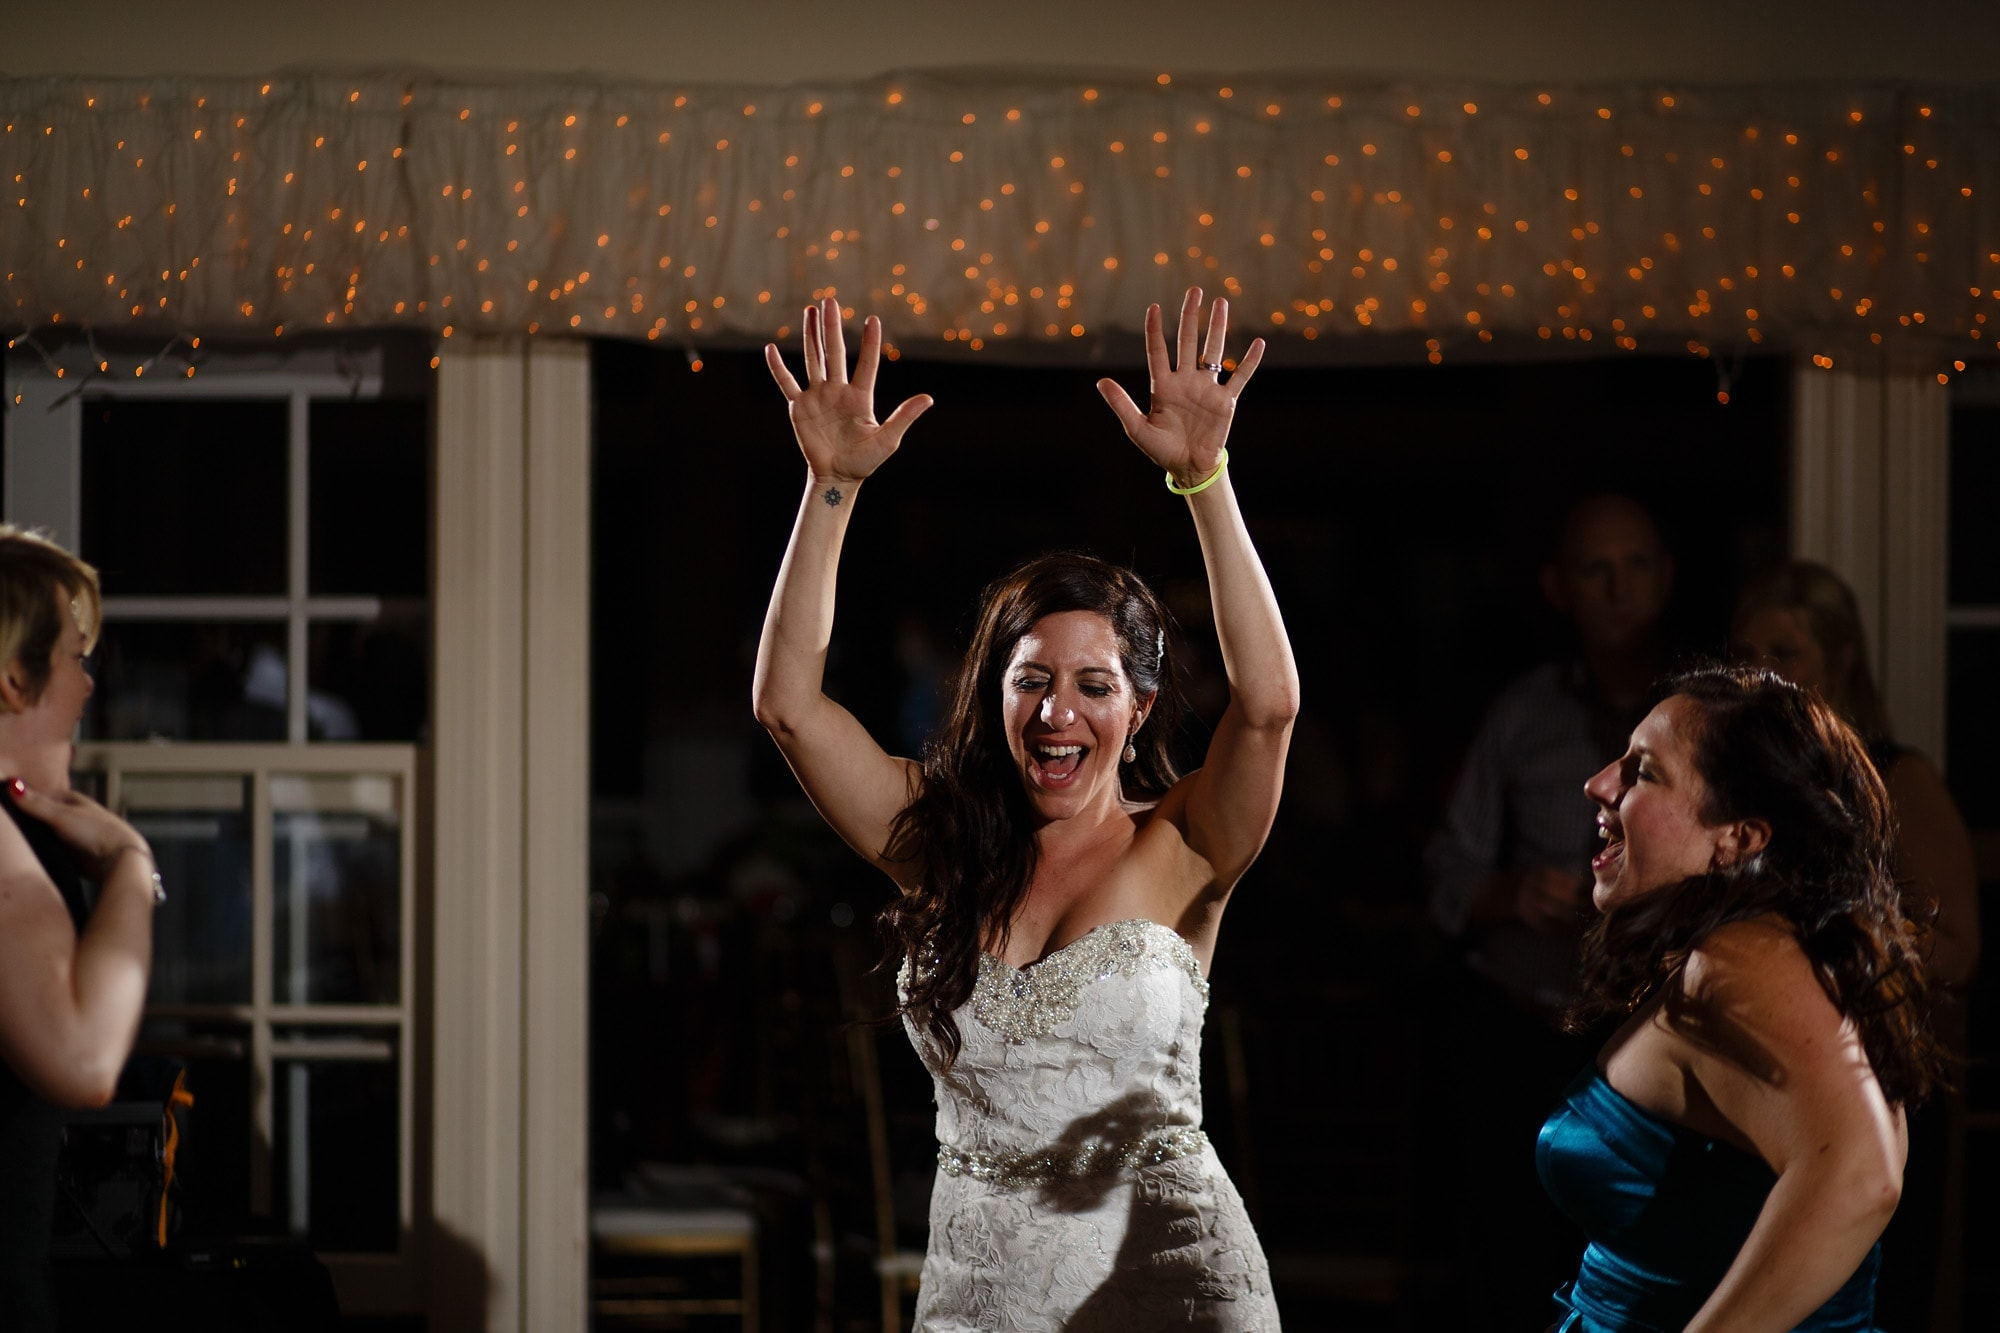 Gina lets loose during the reception